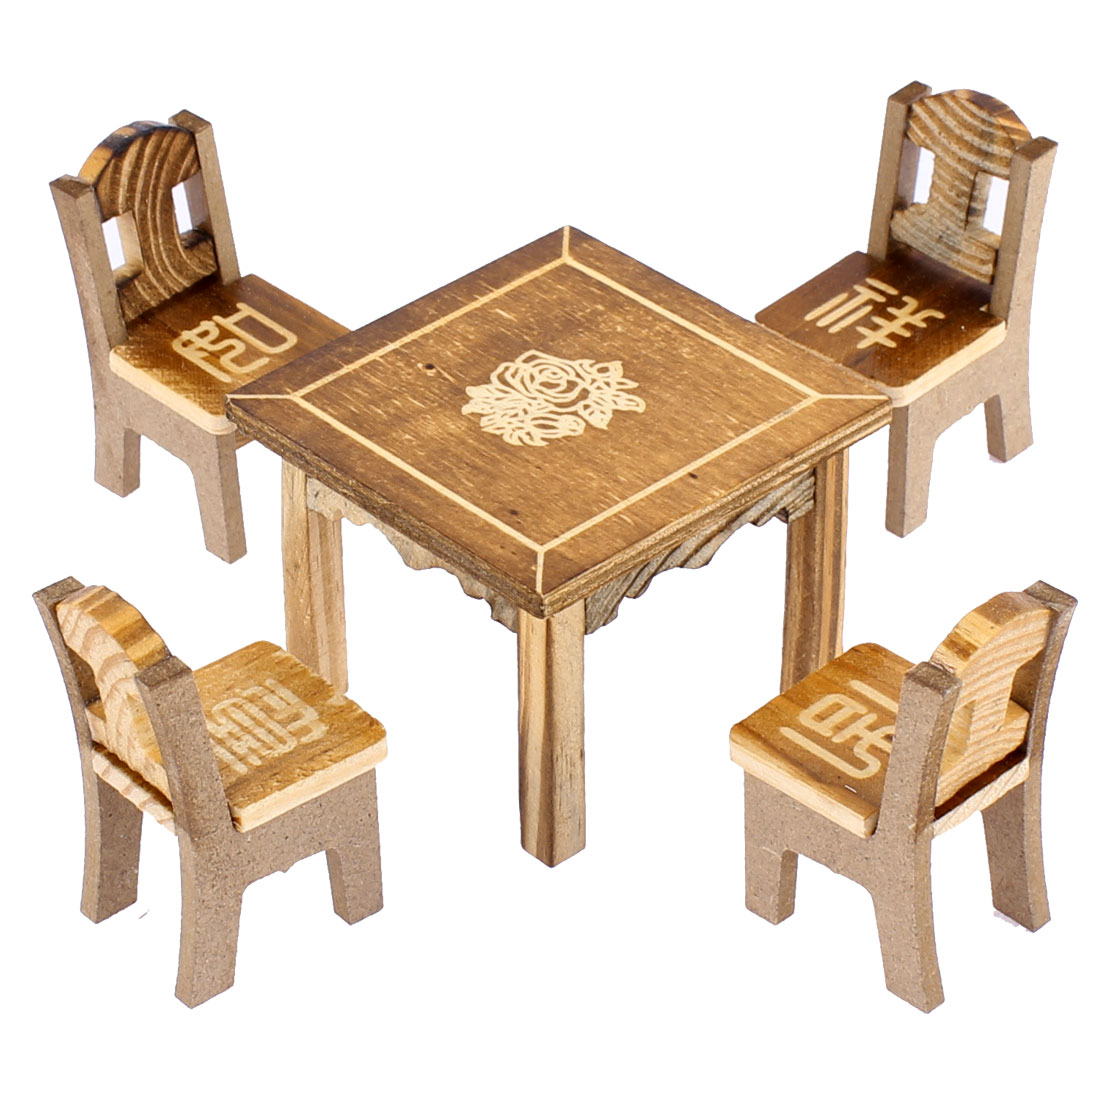 Home Office Wooden Desktop Decoration Flower Printed Craft Table Chair Set